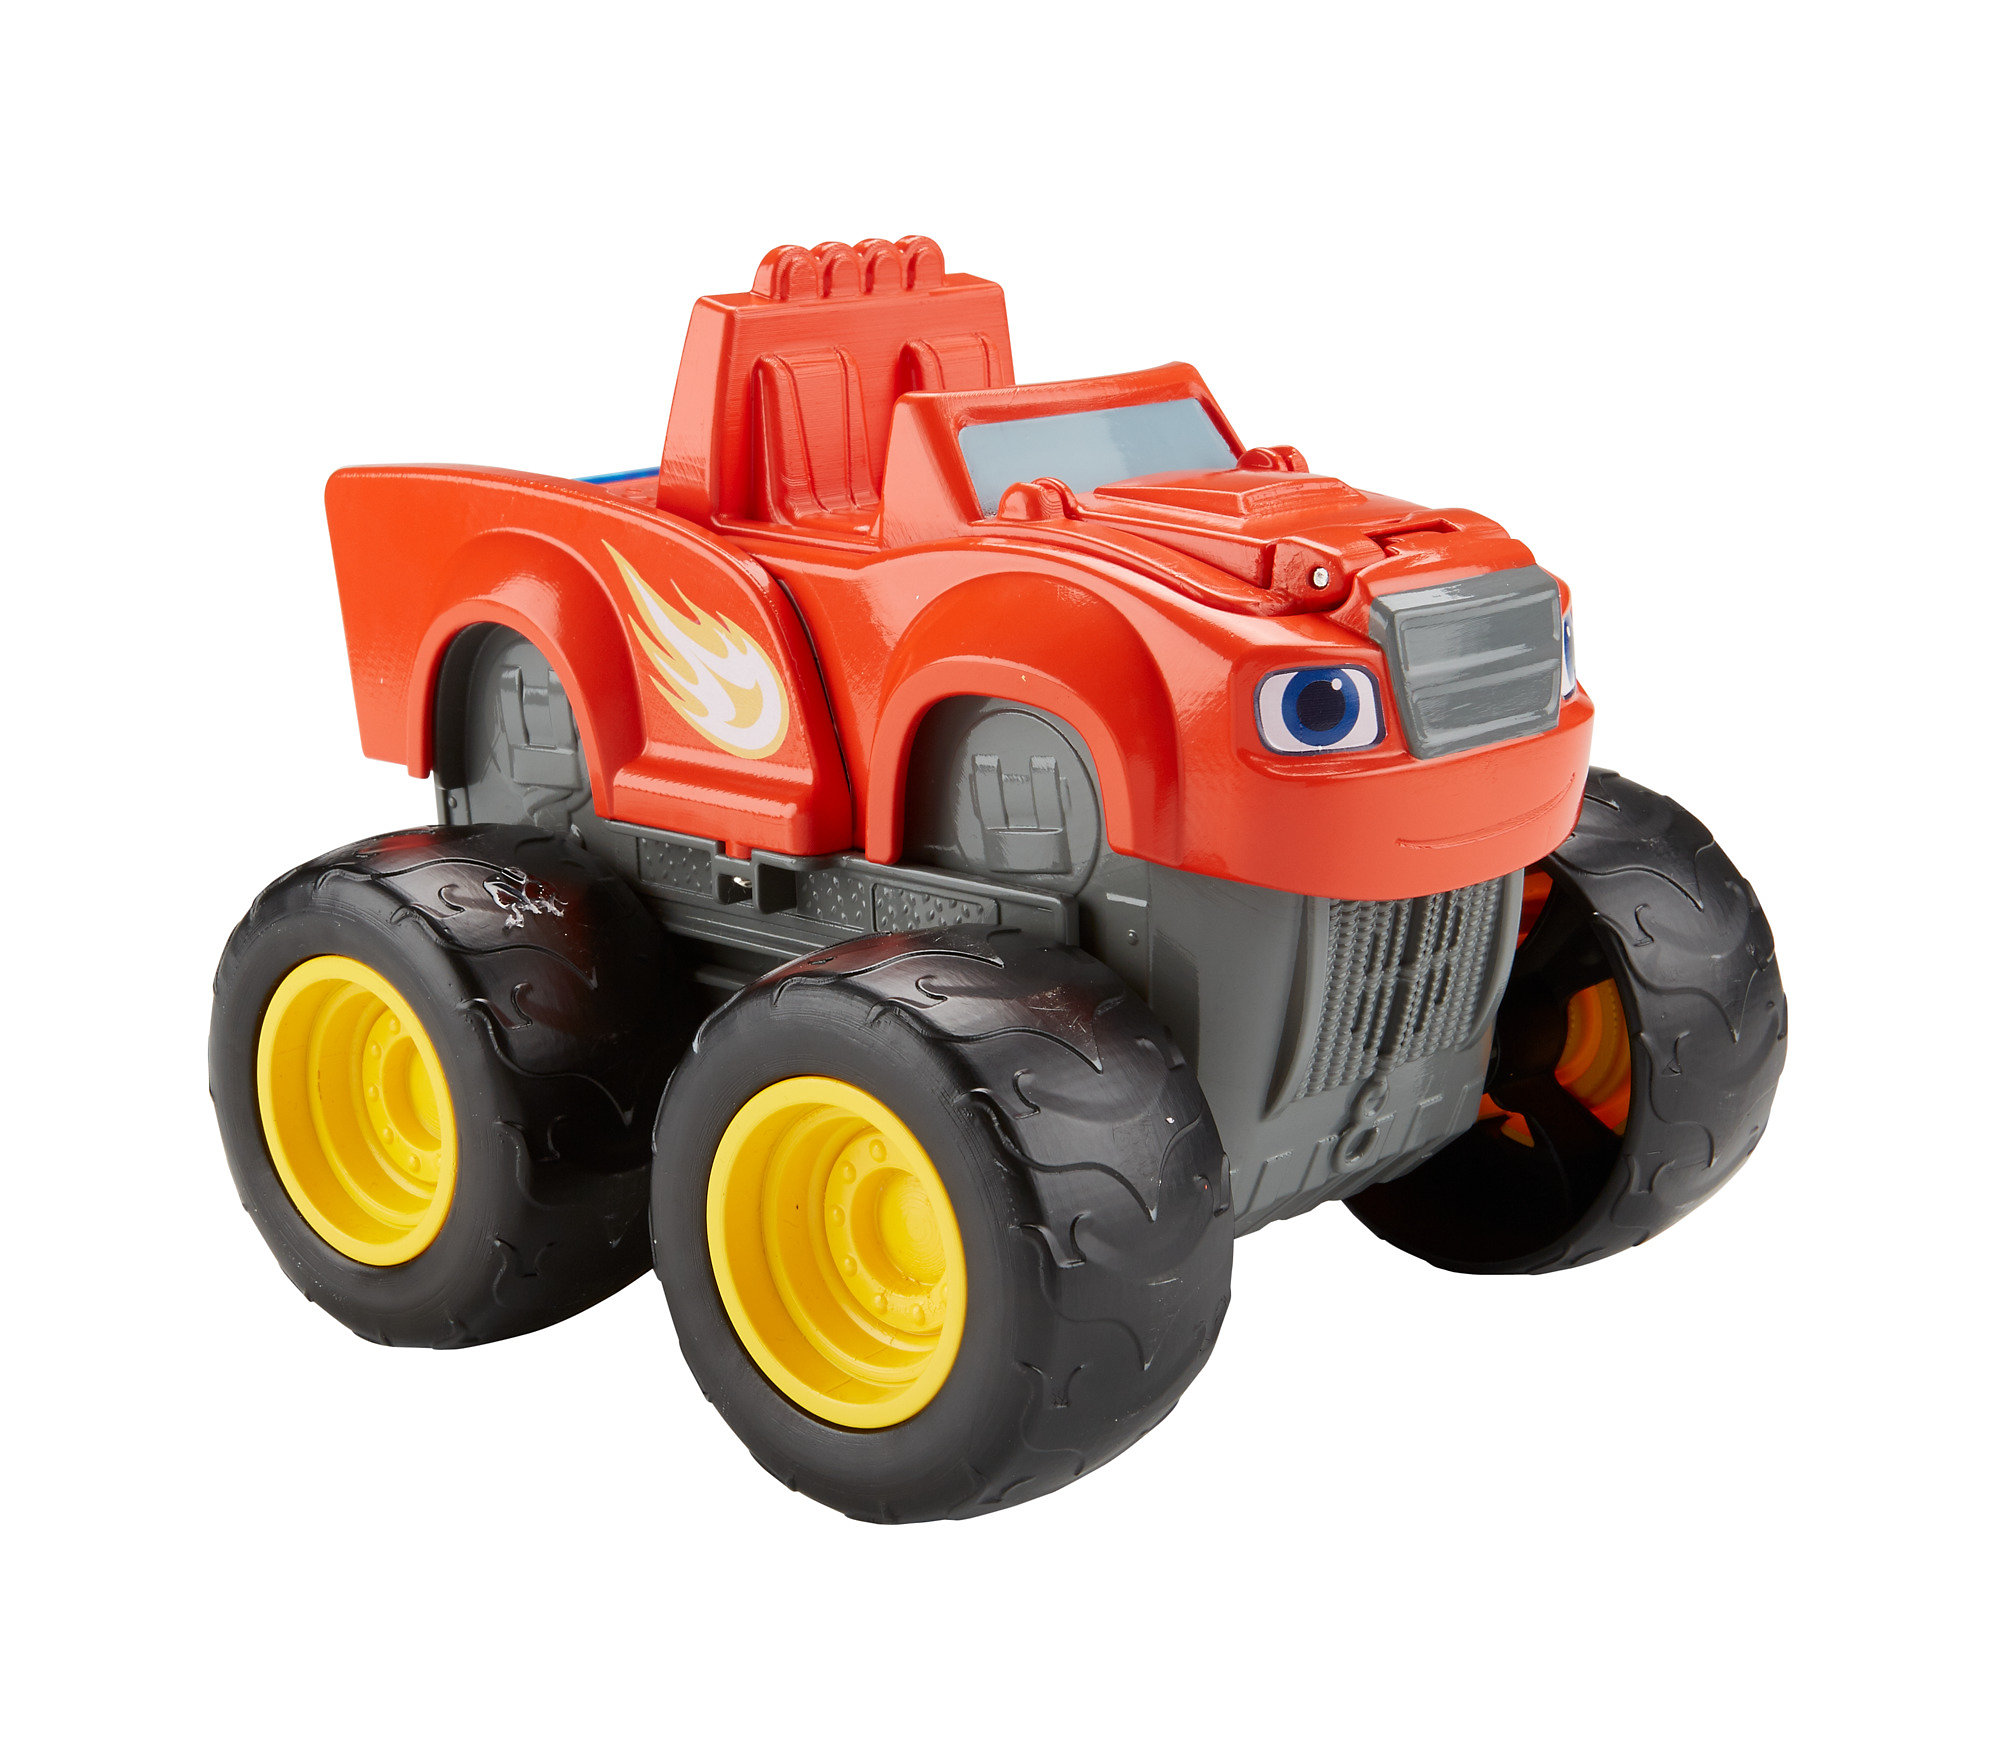 Nickelodeon Blaze & the Monster Machines, Transforming Tow Truck Blaze by Mattel